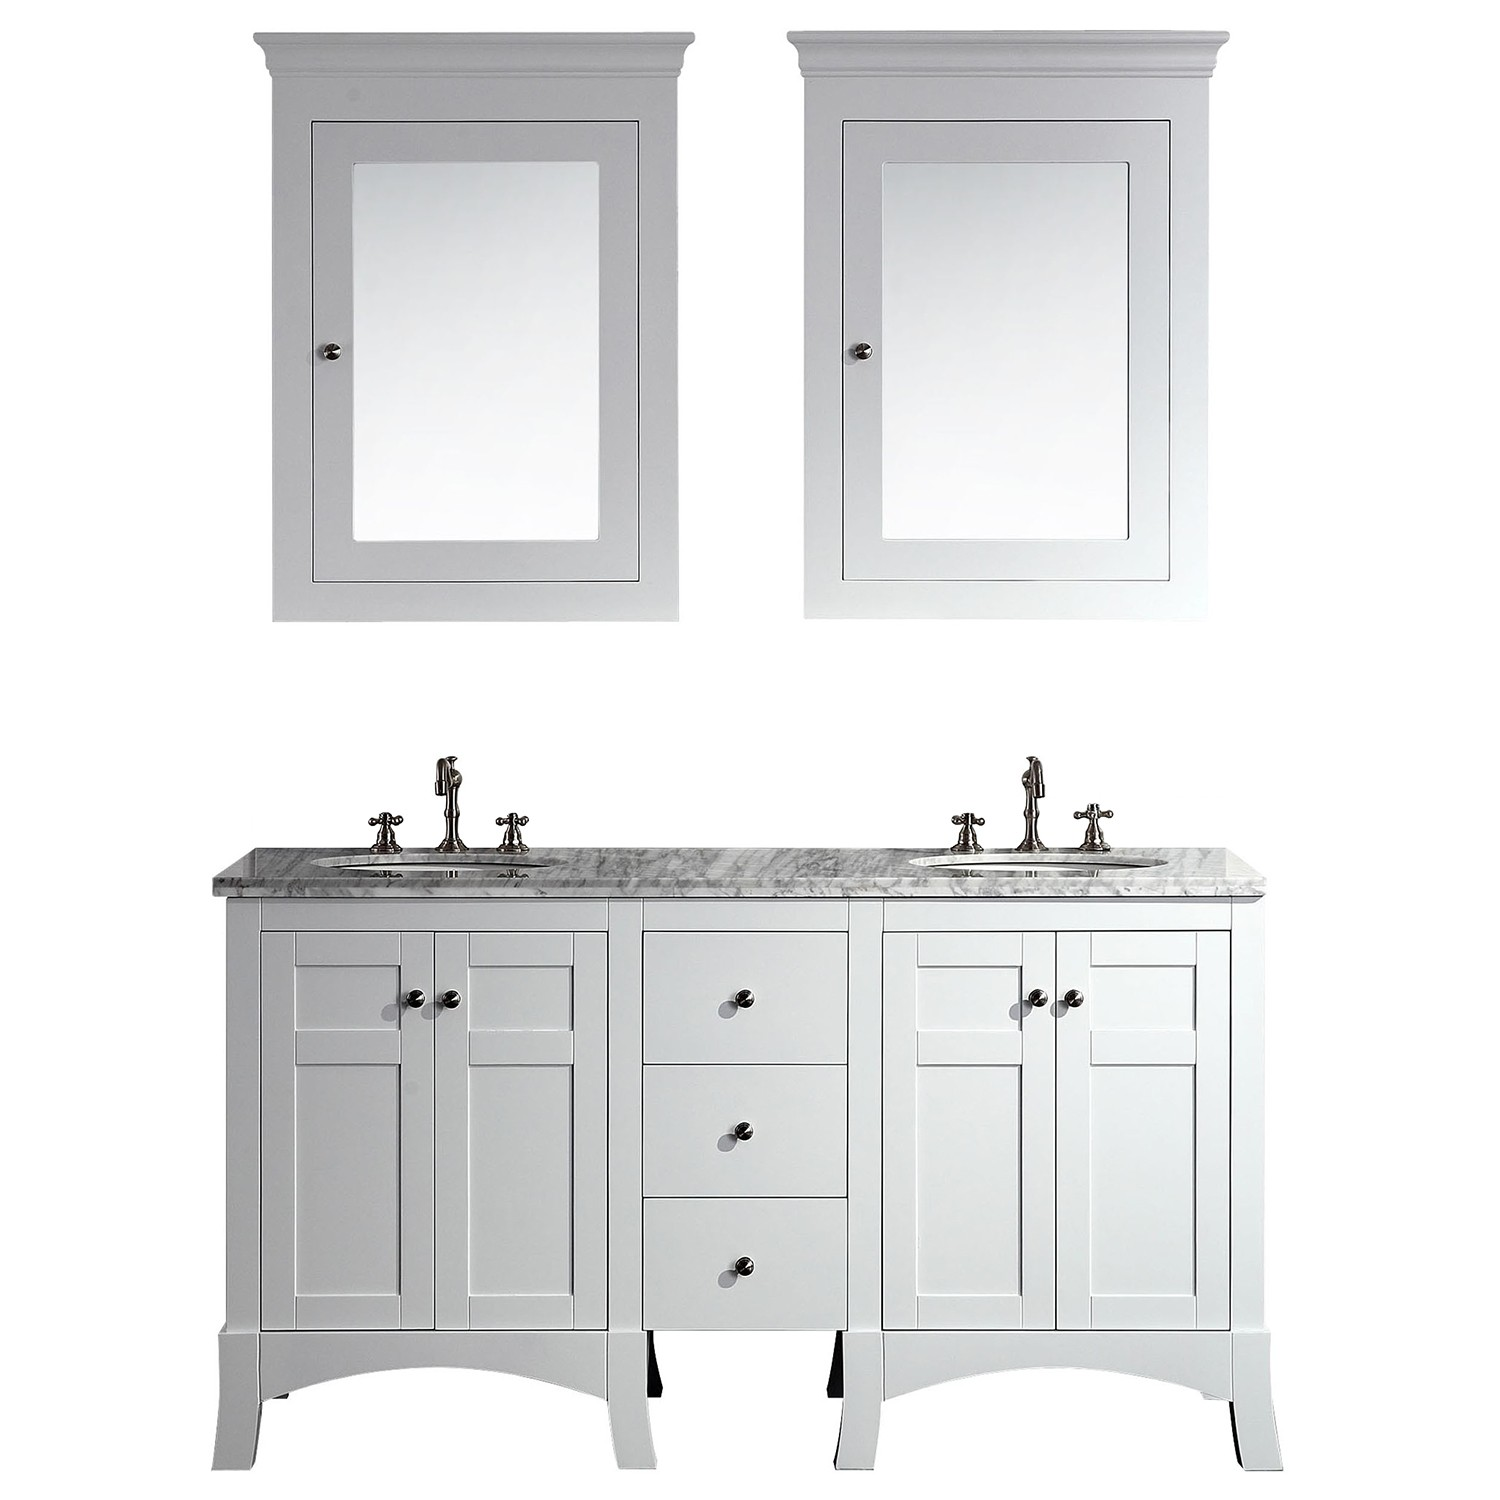 Eviva New York 60 White Bathroom Vanity With Marble Carrera Counter Top Sink